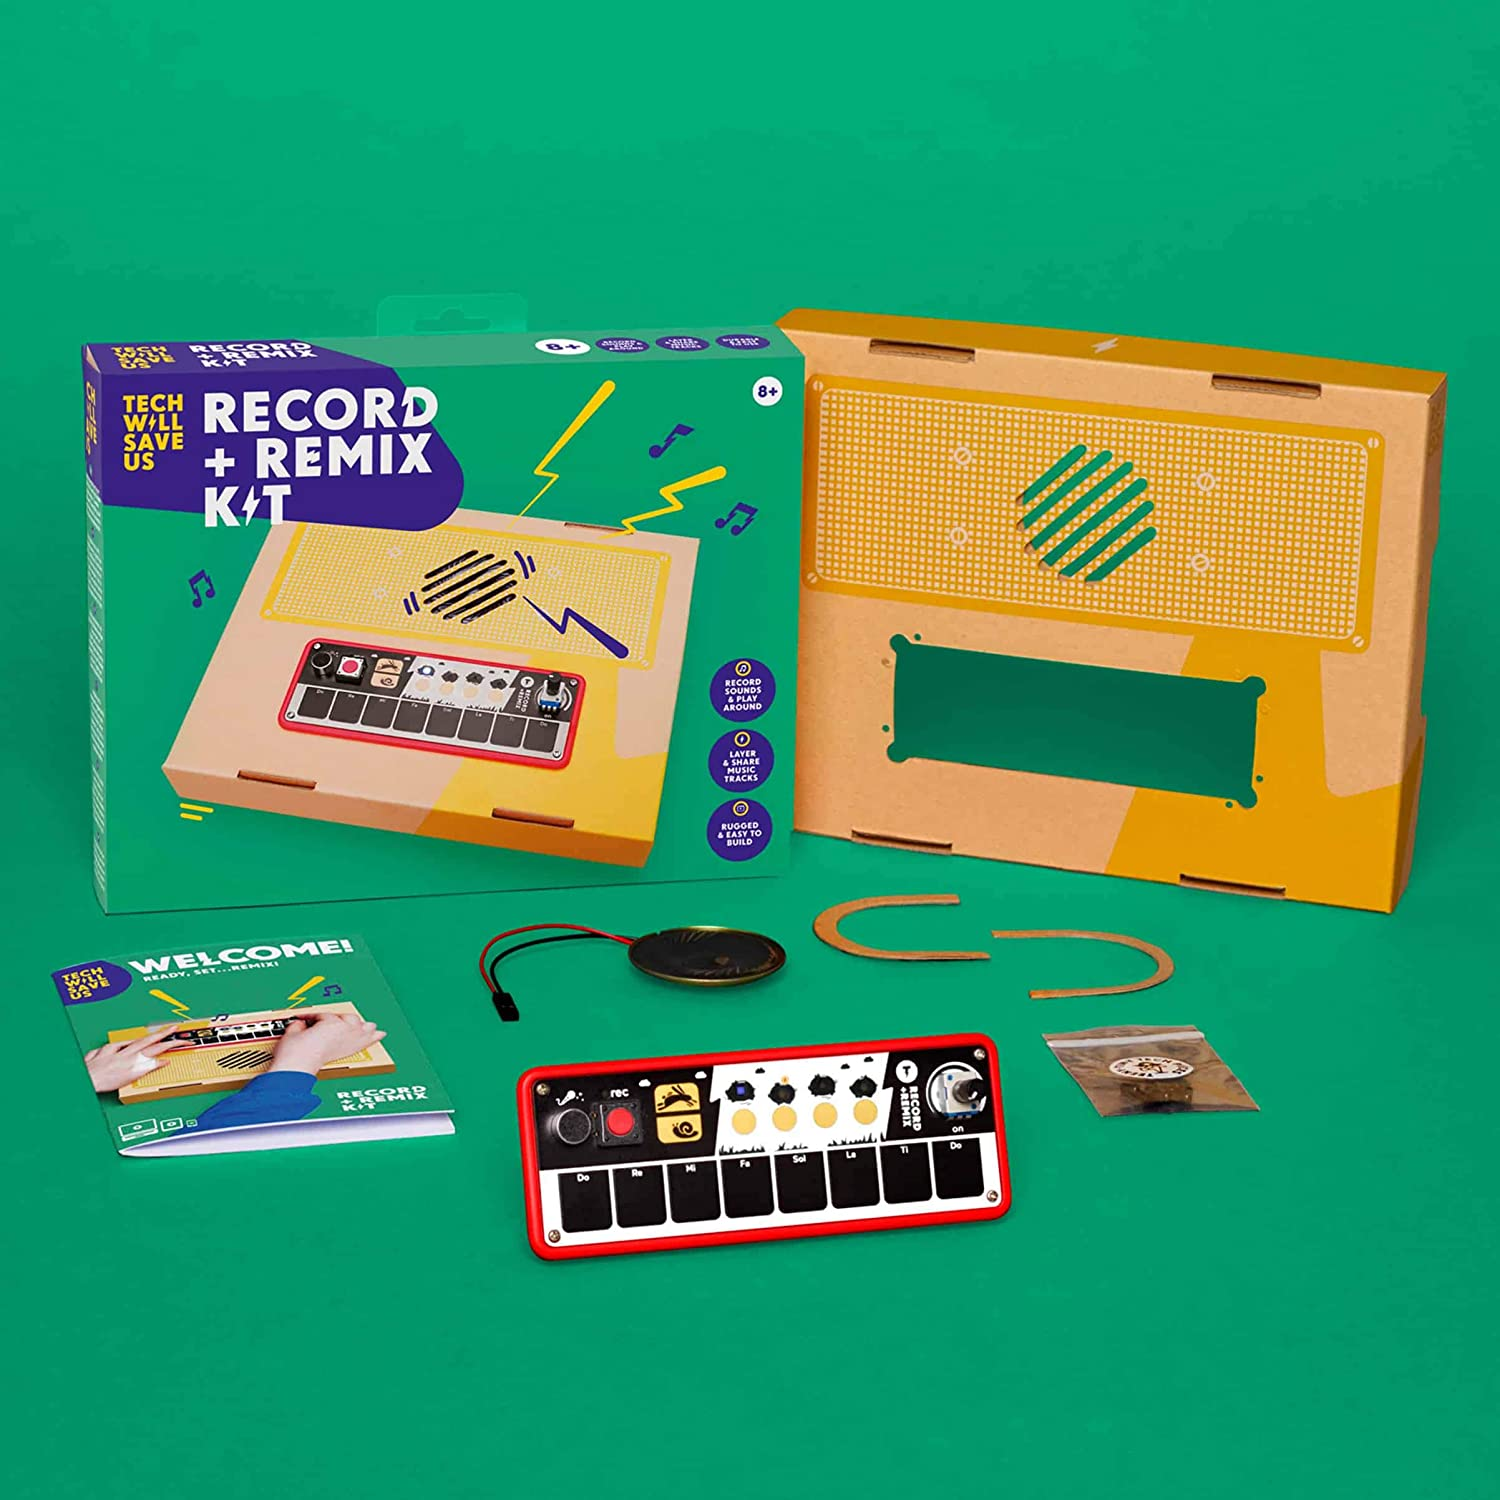 Tech Will Save Us Record and Remix Kit Educational Music Toy Ages 8 and up